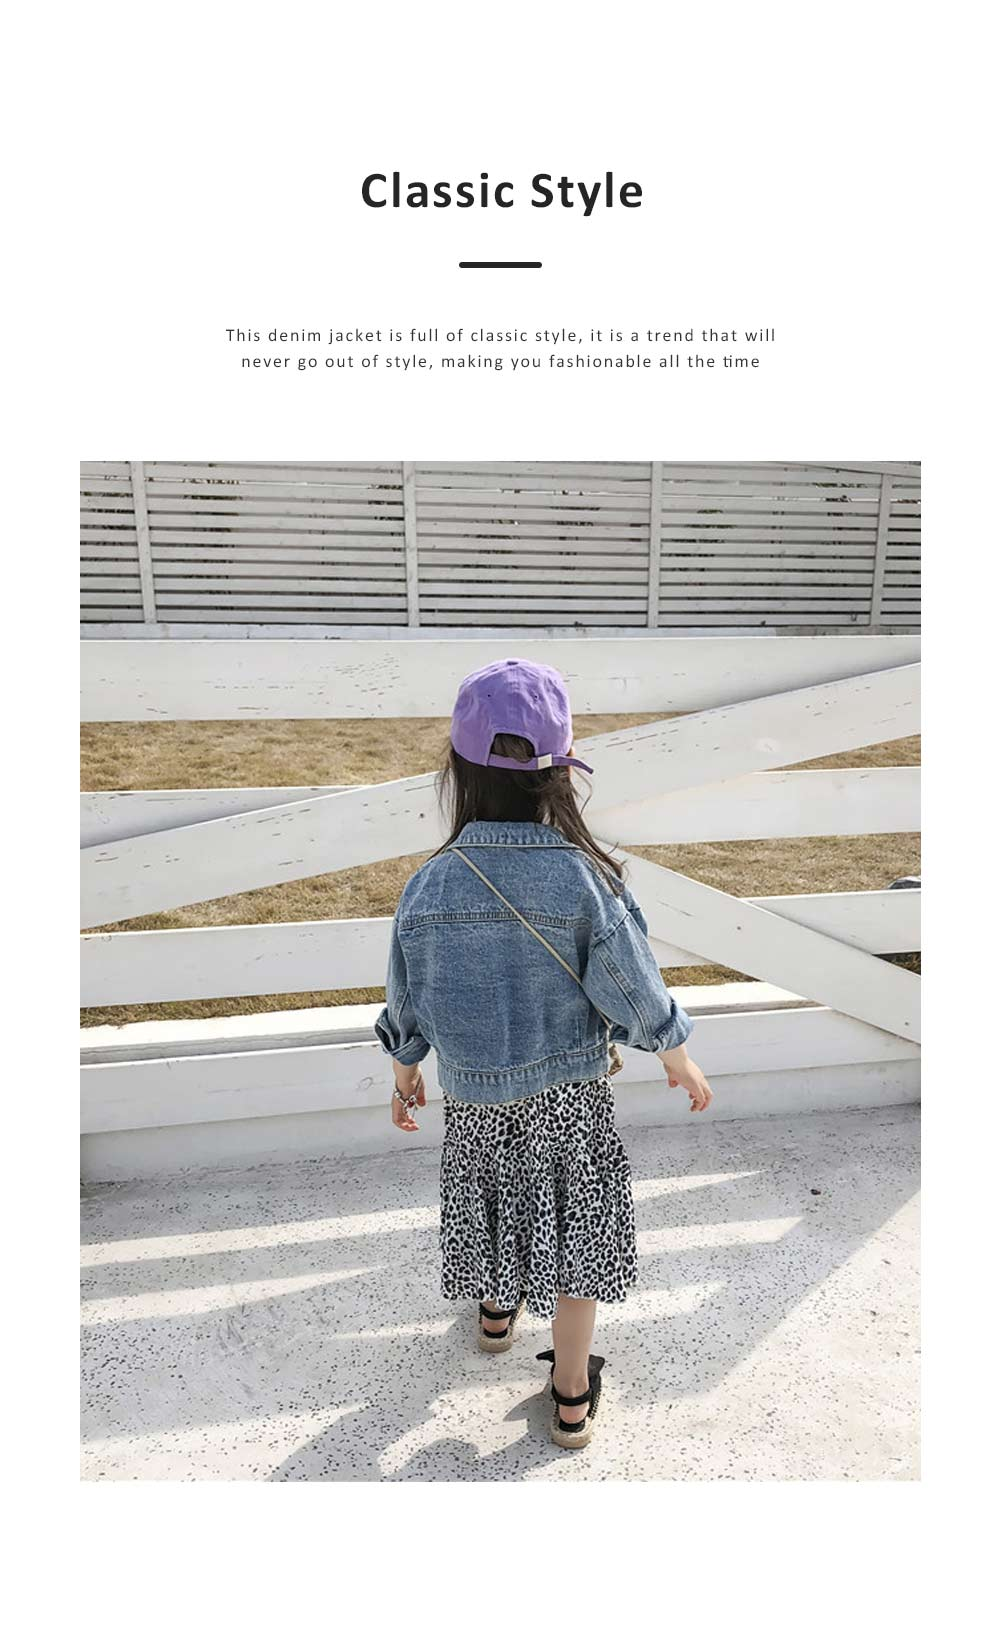 Classic style Denim Jacket Long Sleeve Clothes Fashionable Children Garment with Two Pockets for Girls 1